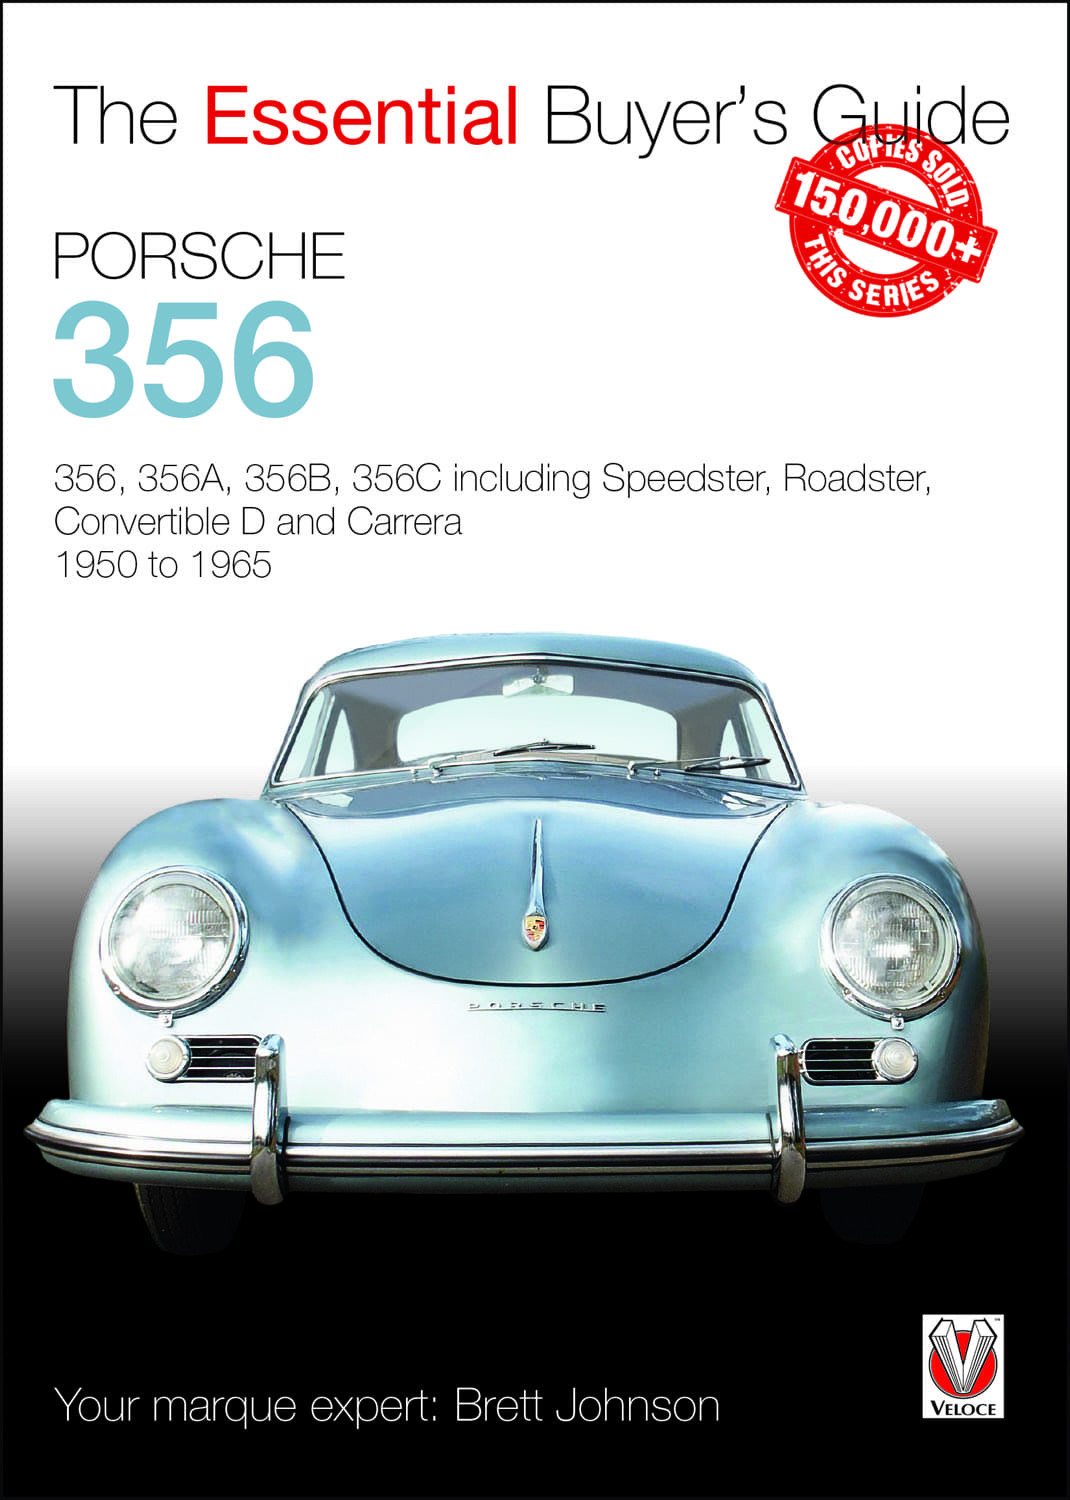 Porsche 356 - The Essential Buyer's Guide cover